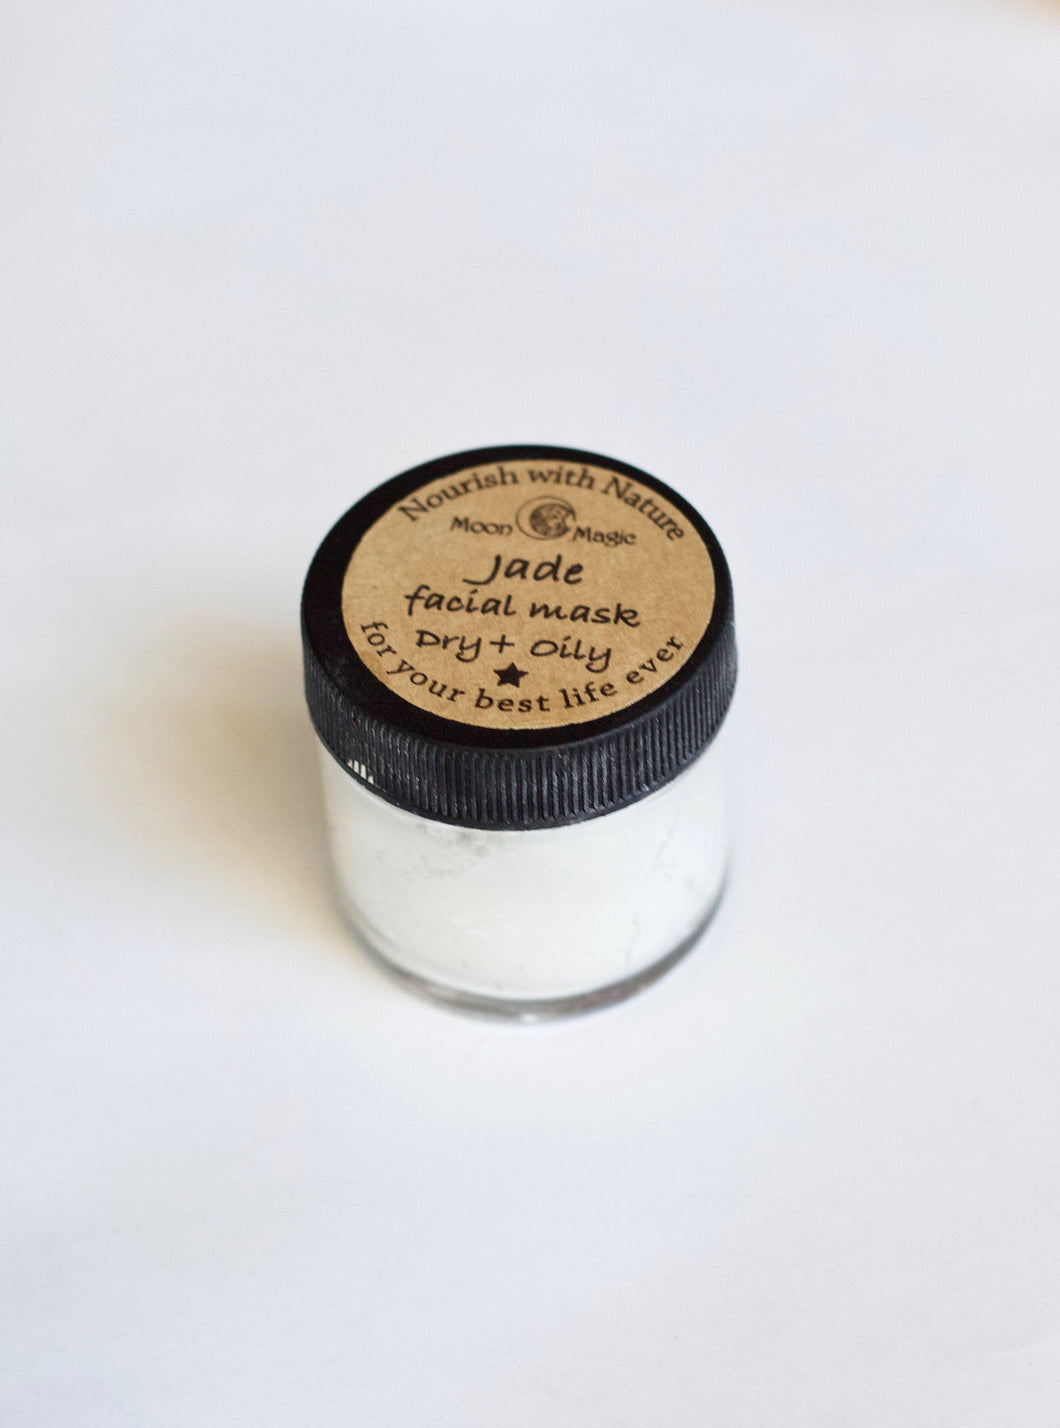 Jade Facial mask, for dry and oily skin